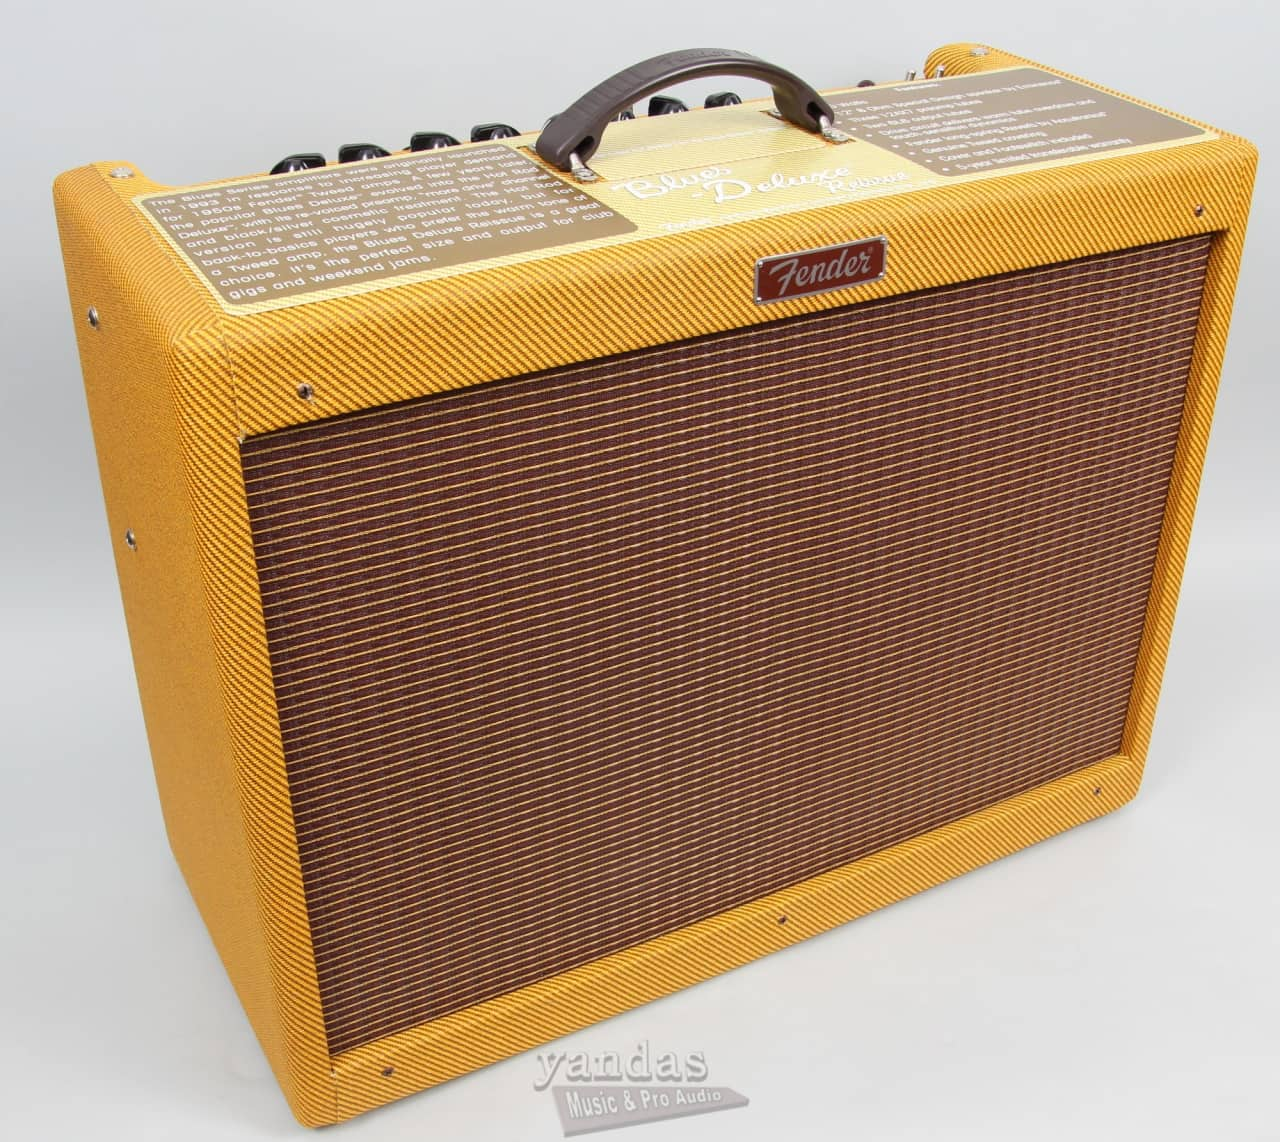 fender blues deluxe reissue electric guitar amplifier reverb. Black Bedroom Furniture Sets. Home Design Ideas